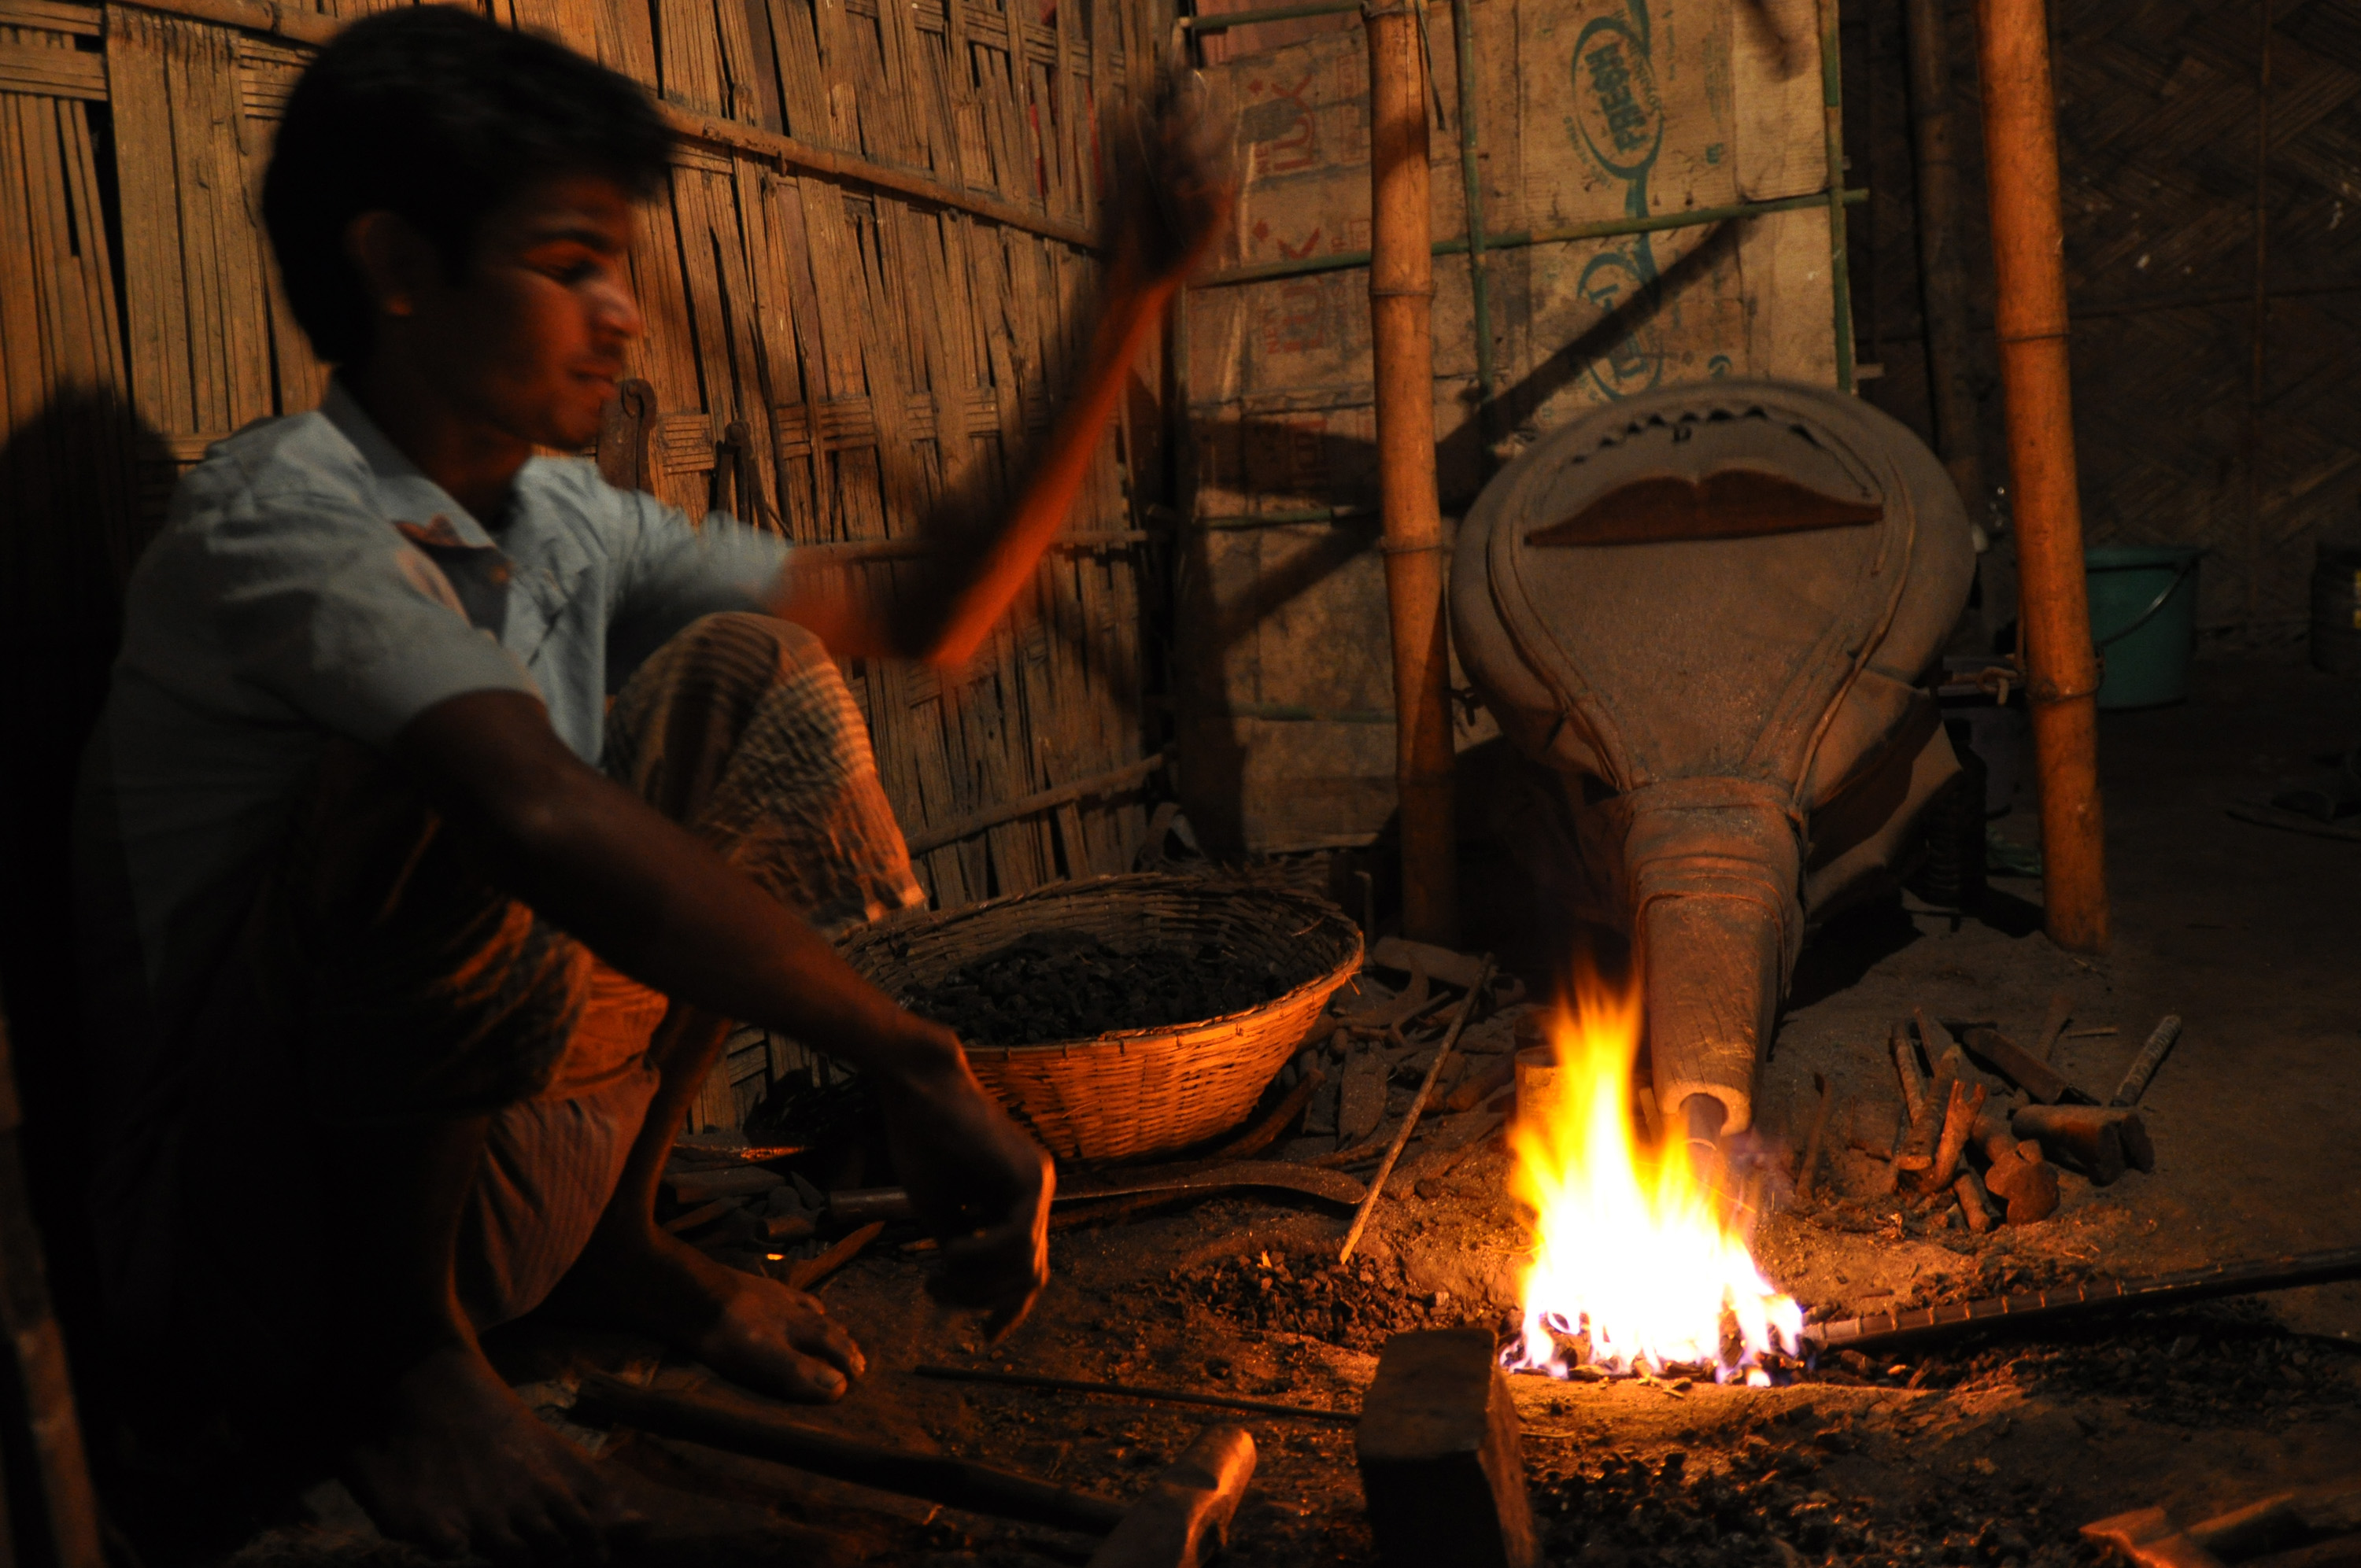 File:A blacksmith in Bangladesh.jpg - Wikimedia Commons